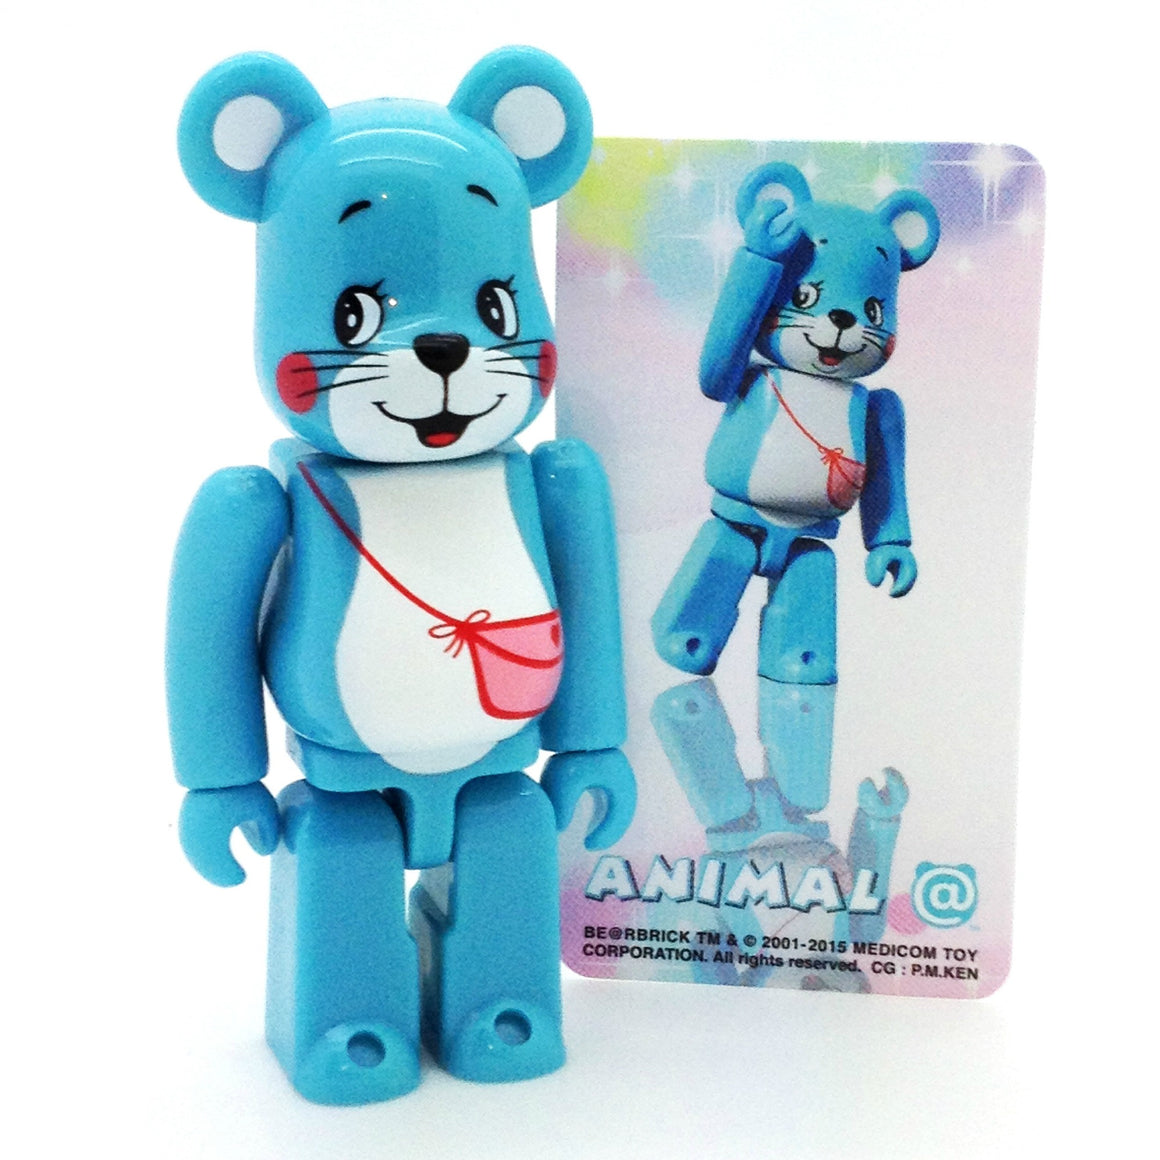 Bearbrick Series 31 - Blue Teddy (Animal) - Mindzai  - 1